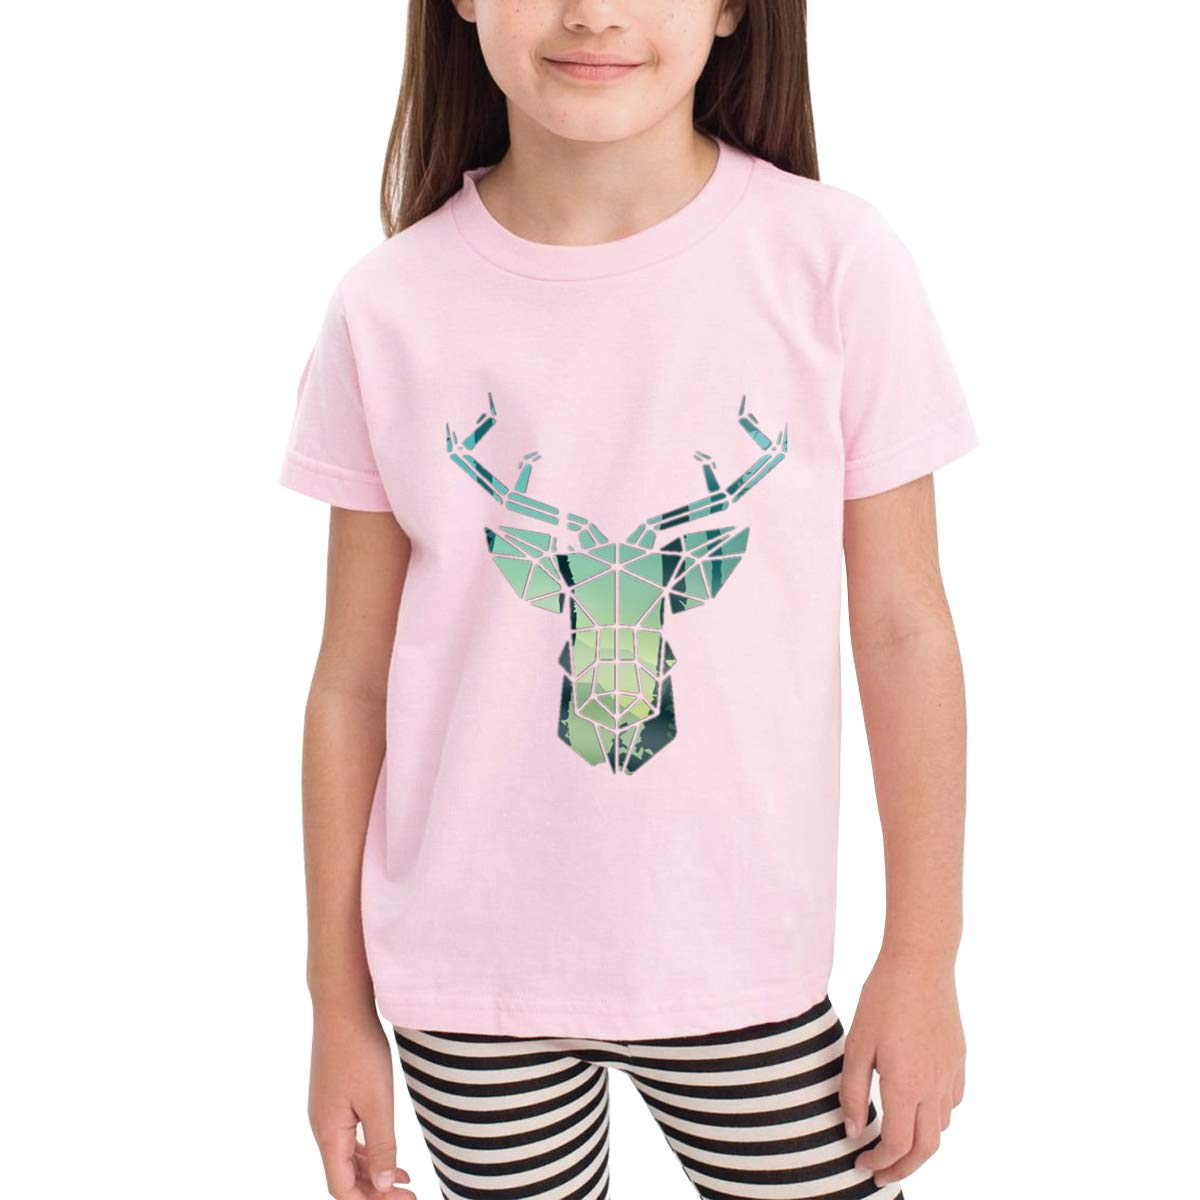 Onlybabycare Geometric Deer 100/% Cotton Toddler Baby Boys Girls Kids Short Sleeve T Shirt Top Tee Clothes 2-6 T